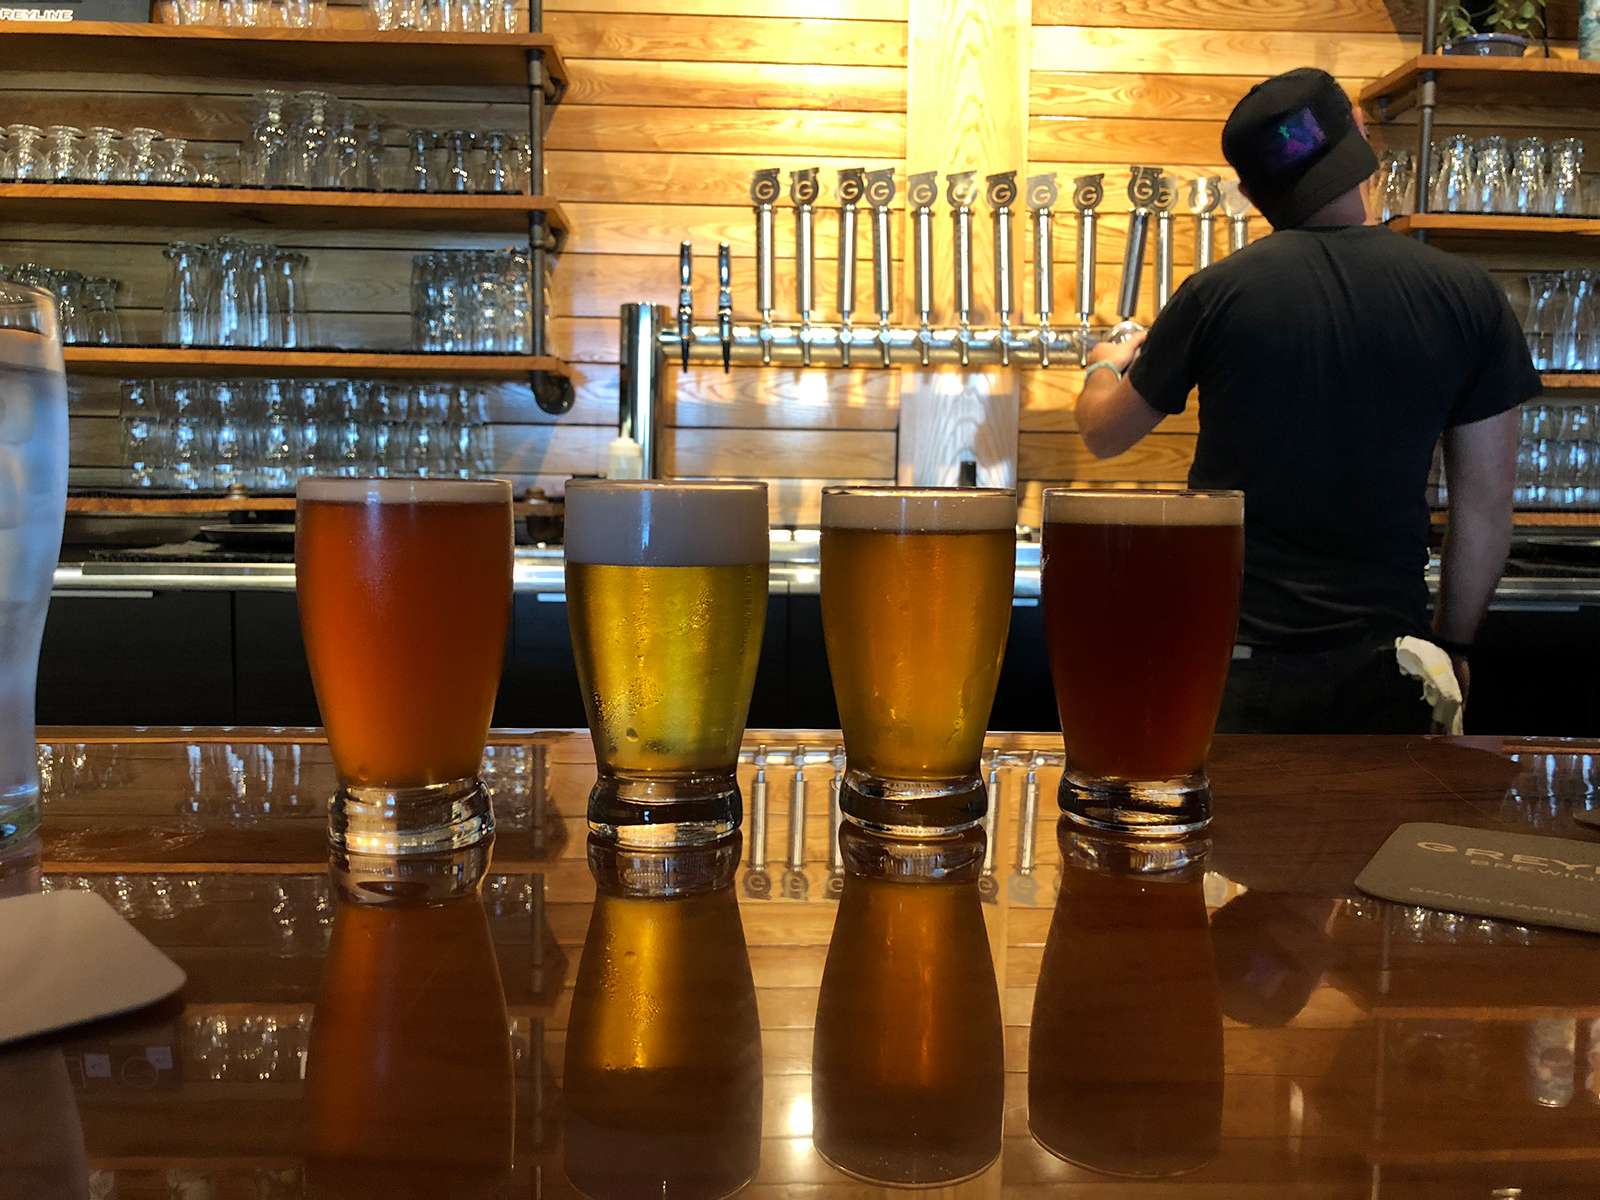 Greyline Brewing Co. in Grand Rapids, MI by Jets Like Taxis / Hopsmash